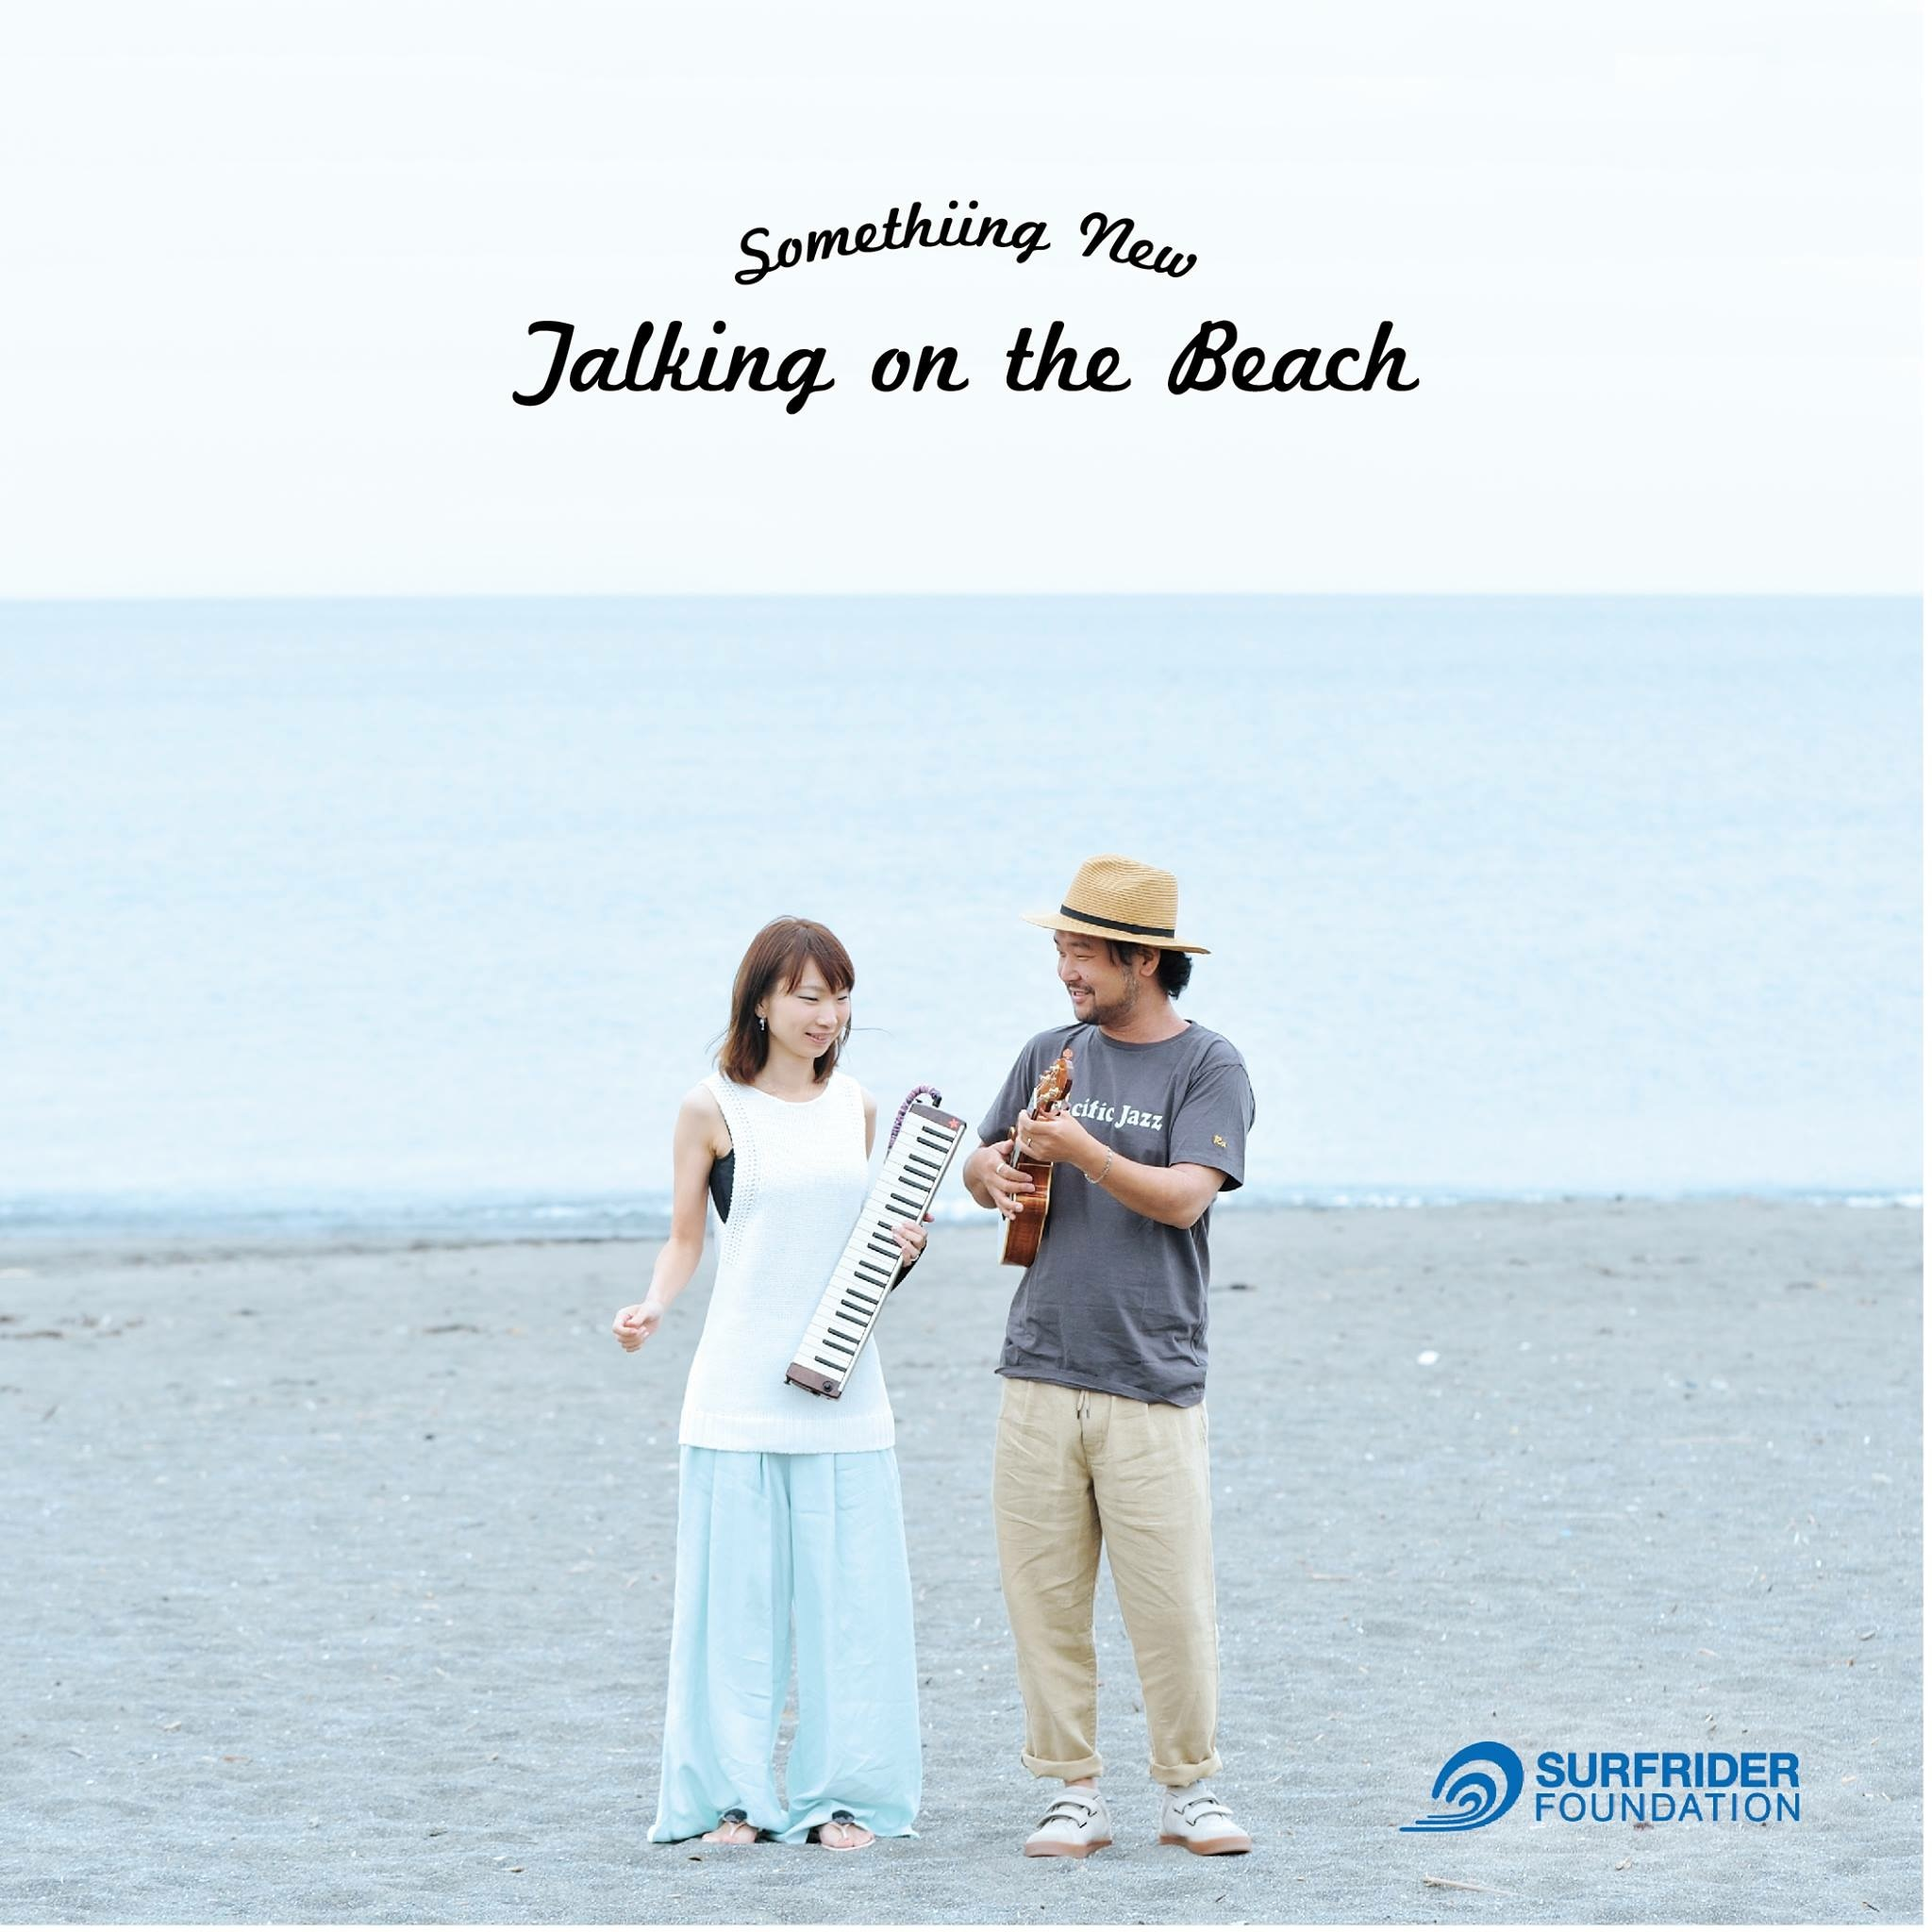 Somethiing New/Talking on the Beach (通常版)